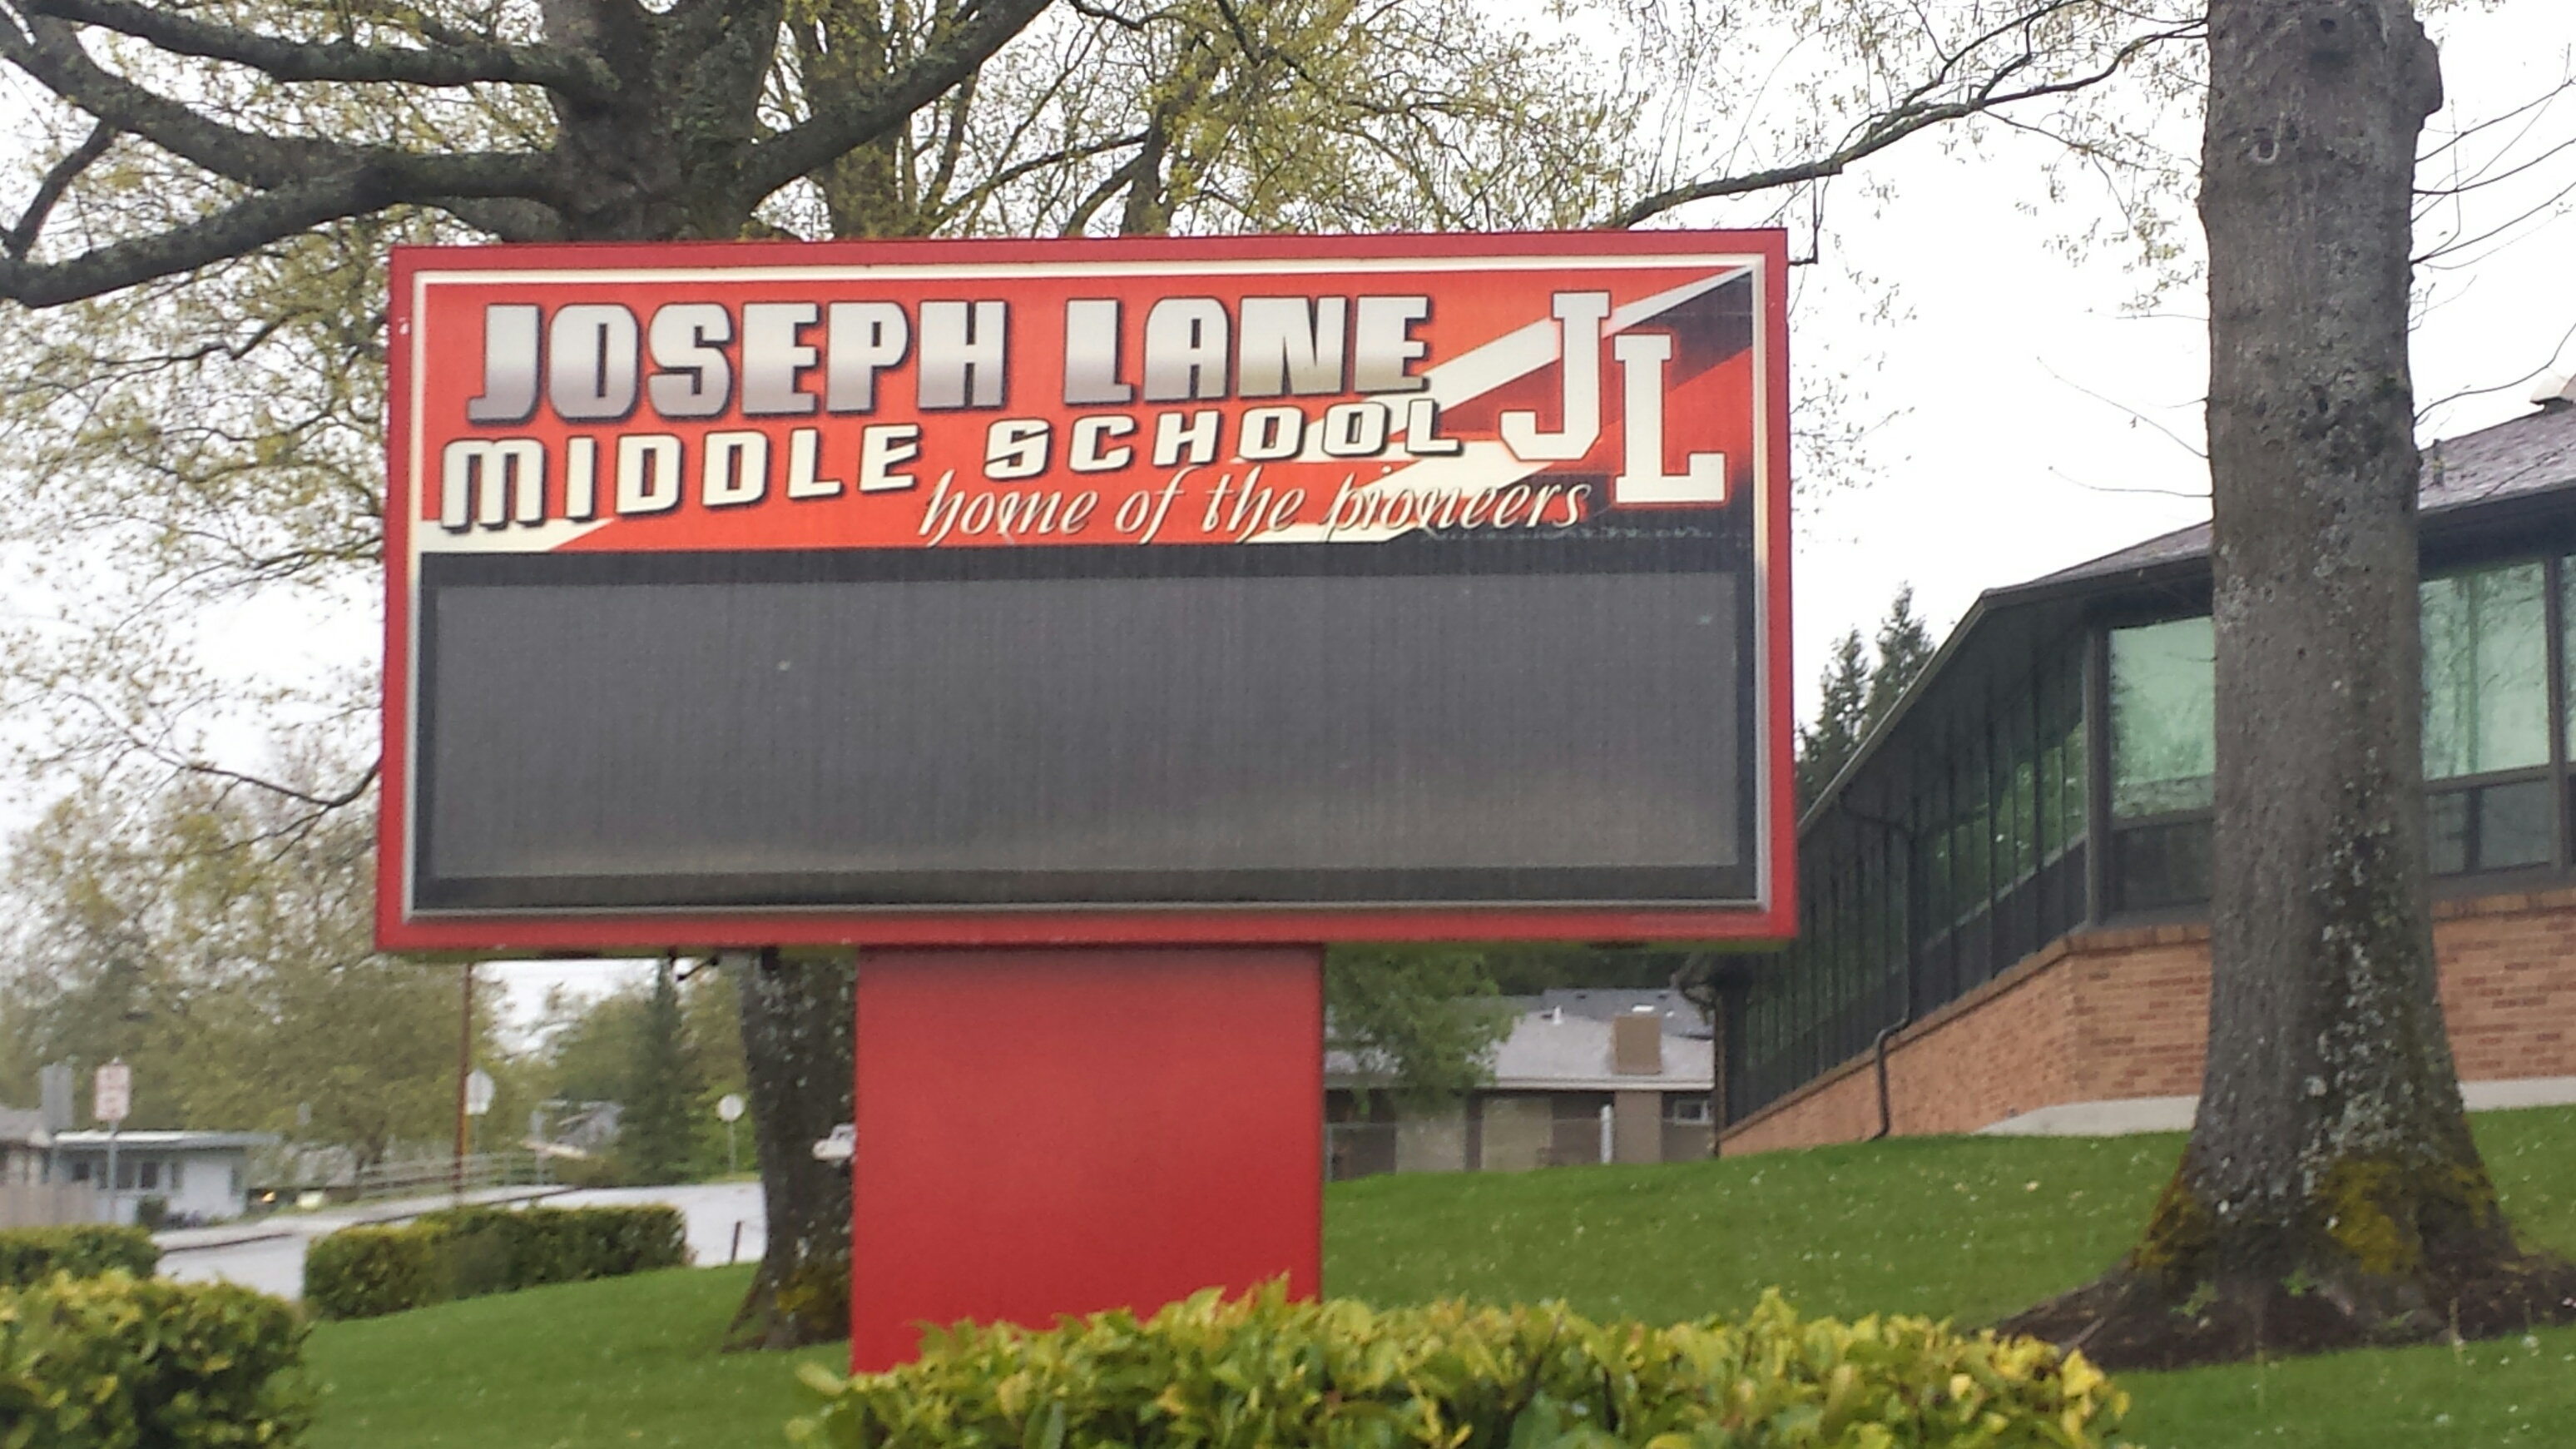 Joseph Lane Middle School (SBG photo)